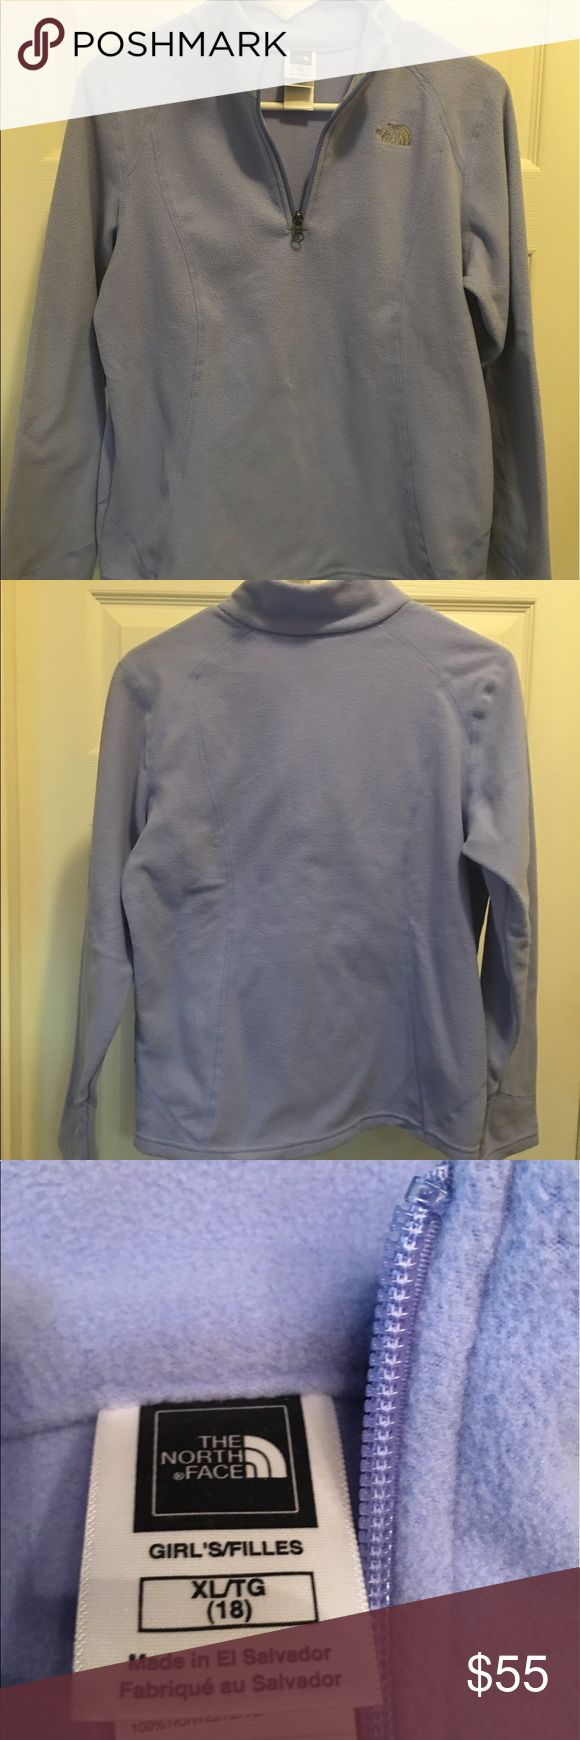 Girls north face half zip jacket Girls size xl (18) in great condition! The North Face Jackets & Coats